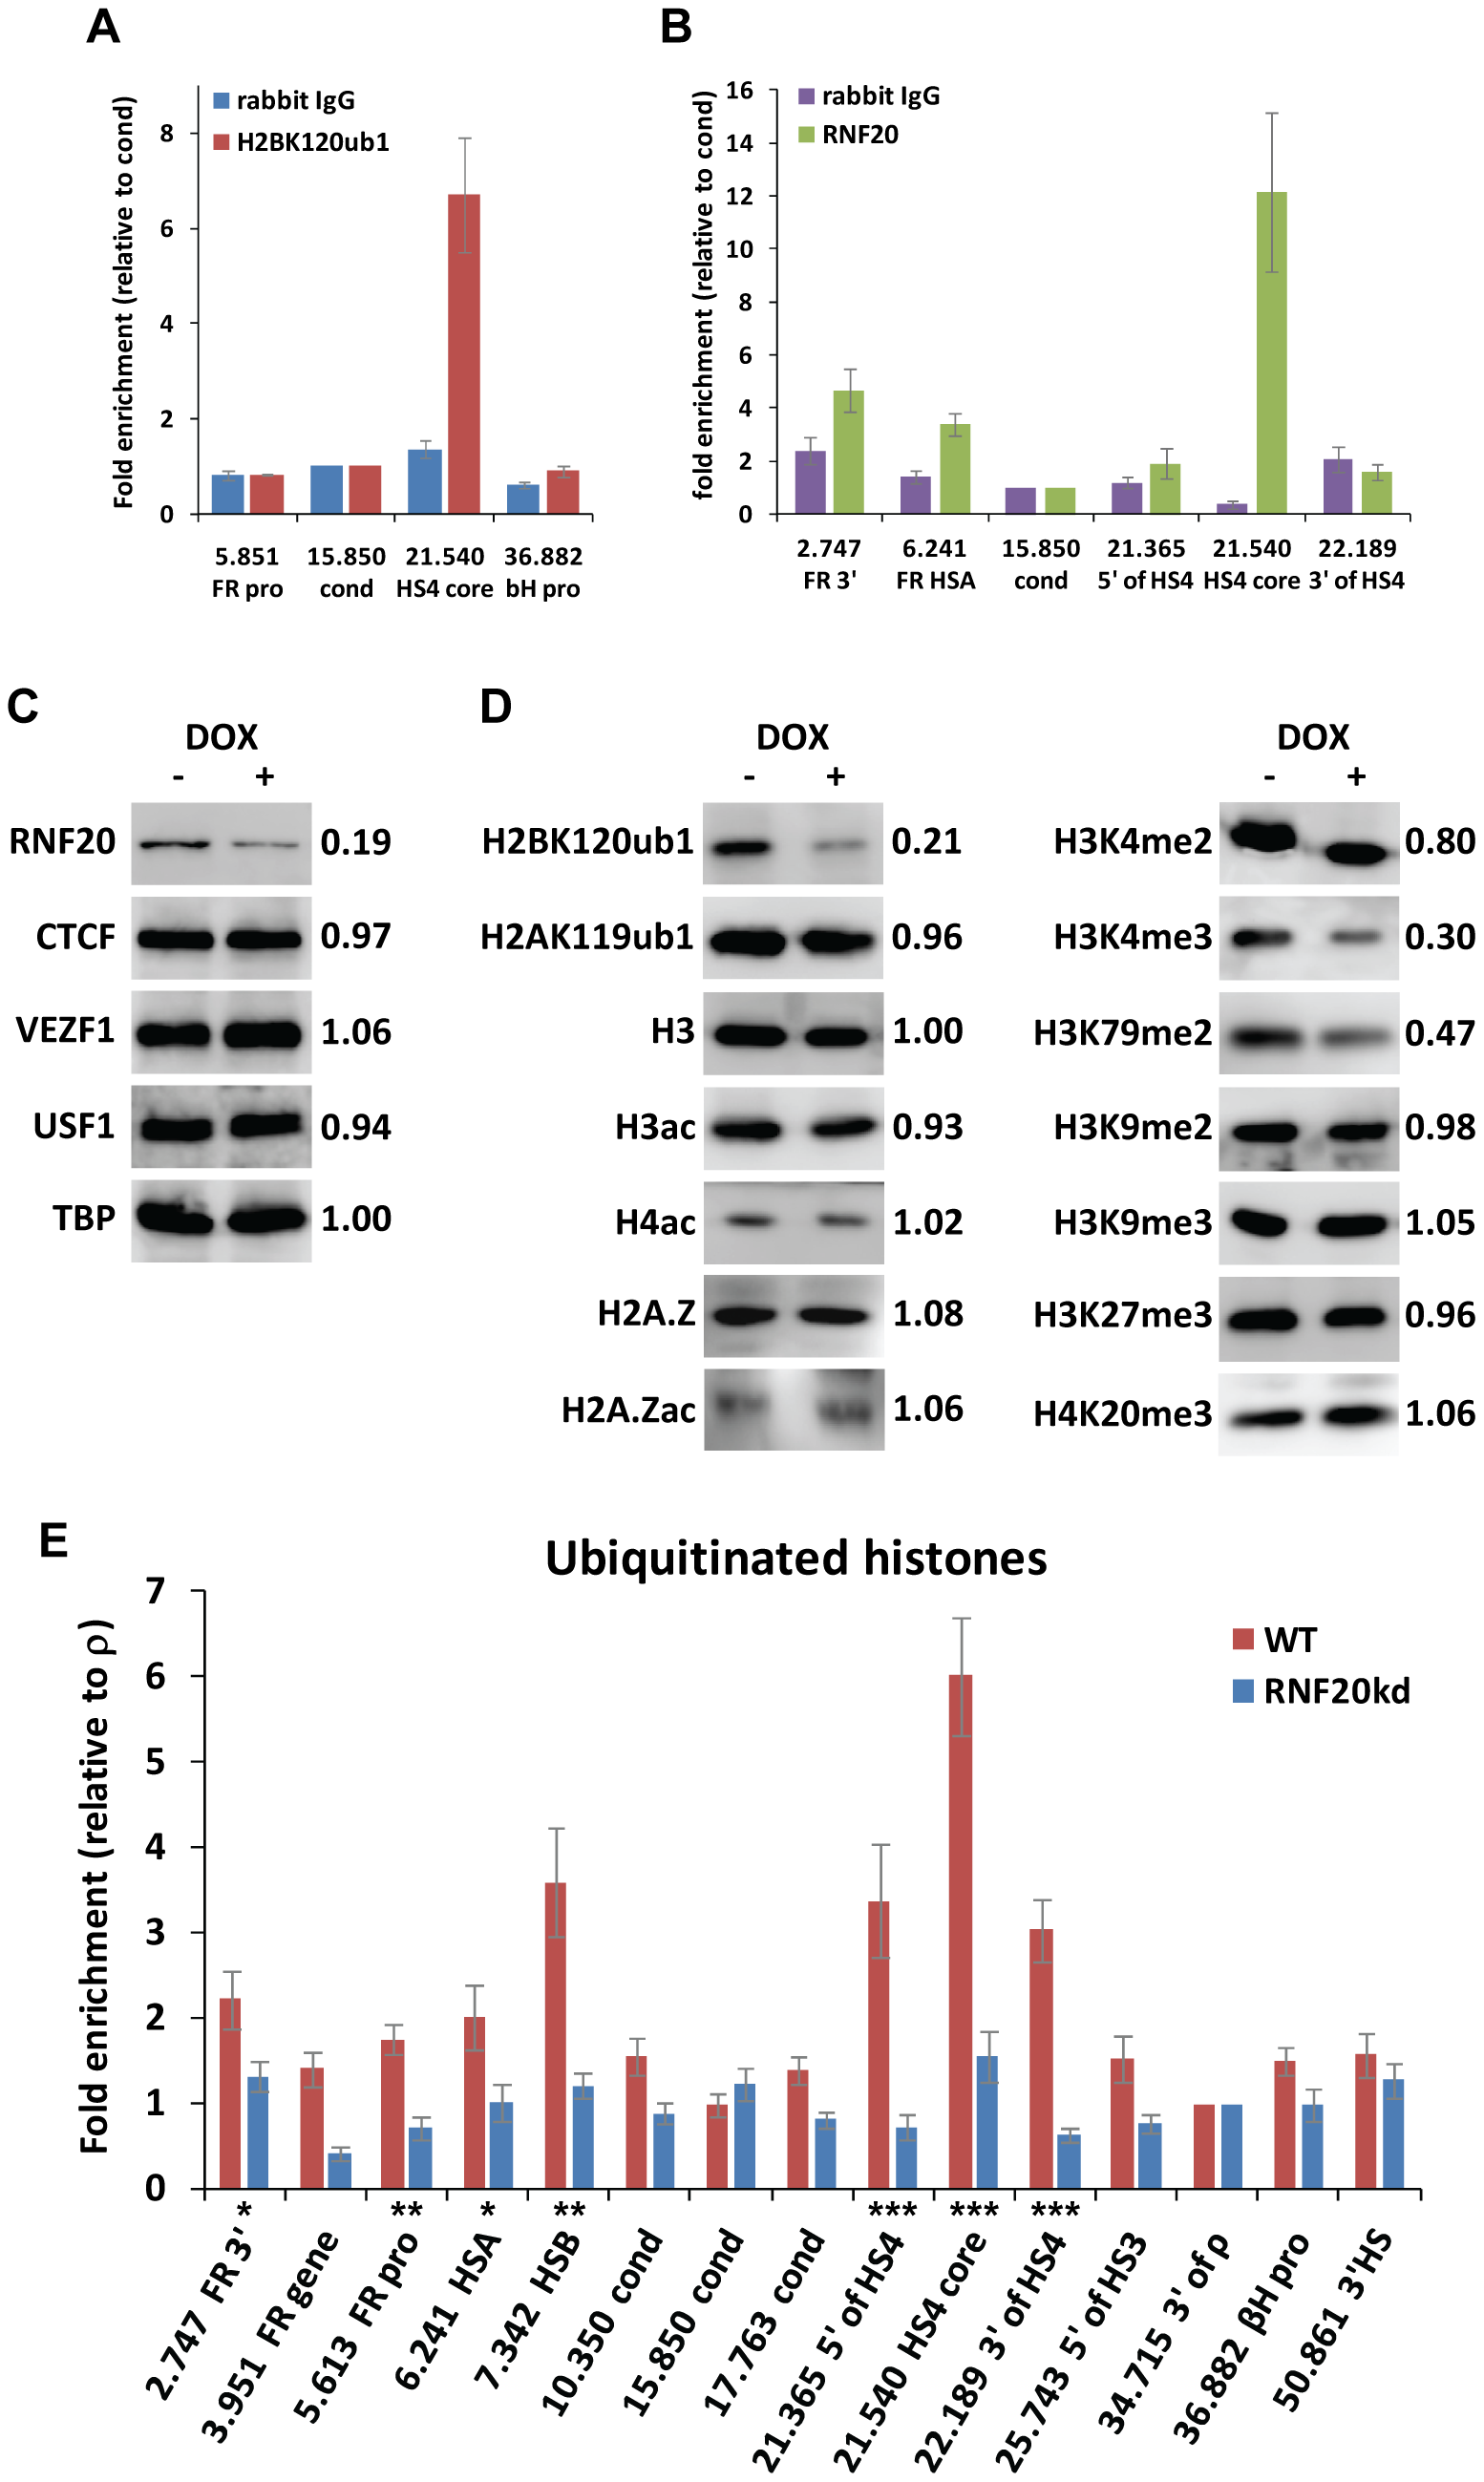 The ubiquitin ligase RNF20 mediates H2B ubiquitination at the HS4 insulator.